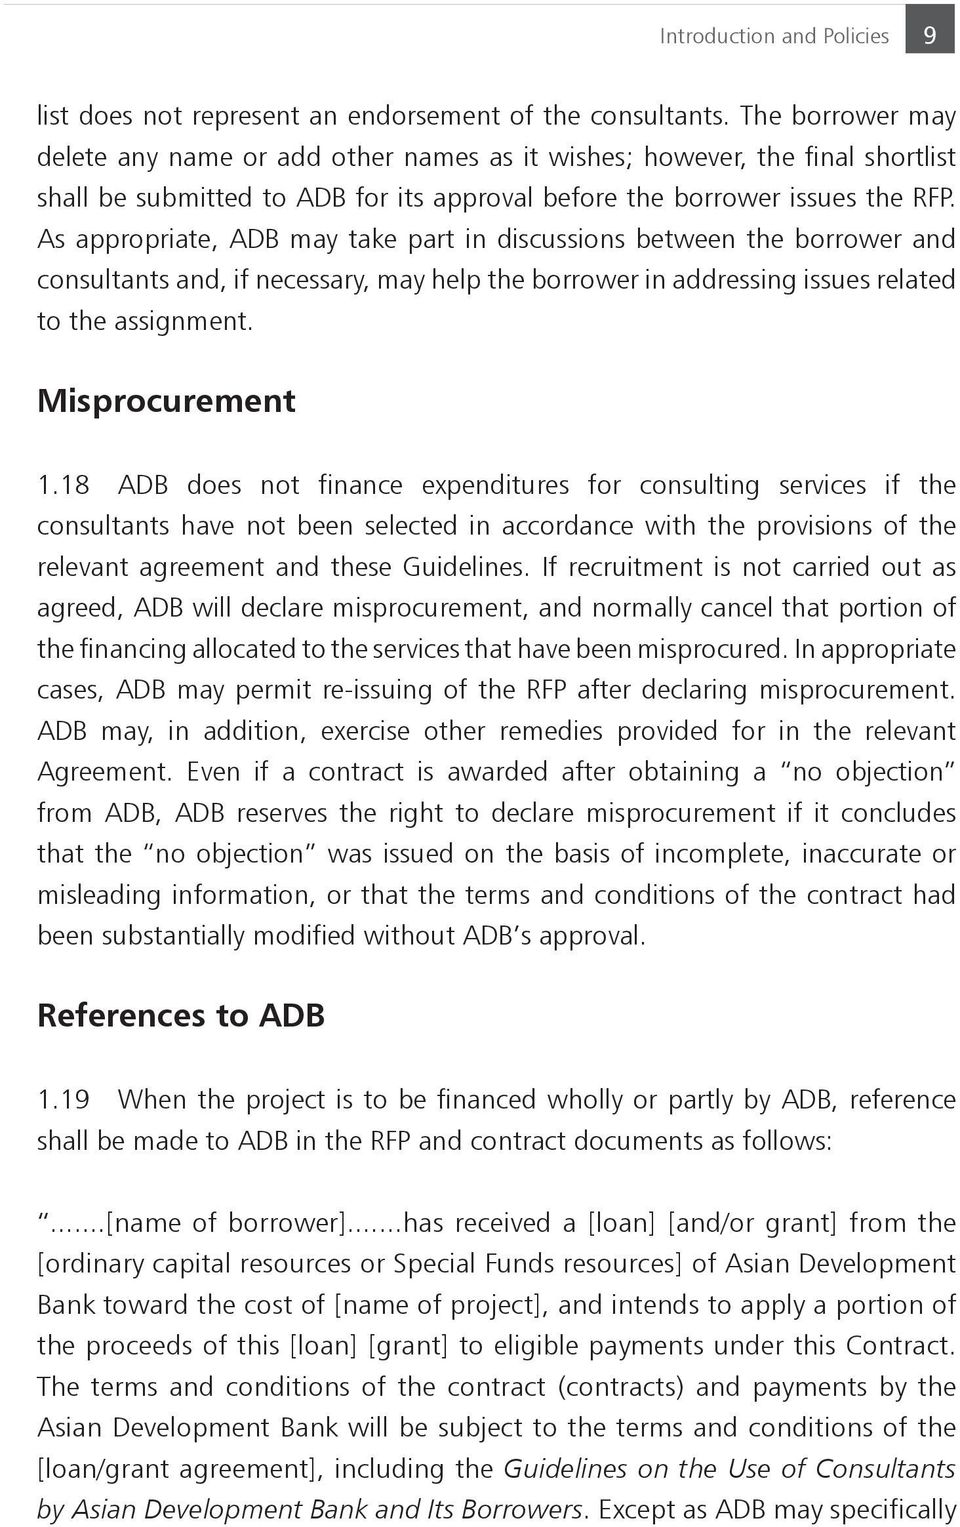 As appropriate, ADB may take part in discussions between the borrower and consultants and, if necessary, may help the borrower in addressing issues related to the assignment. Misprocurement 1.